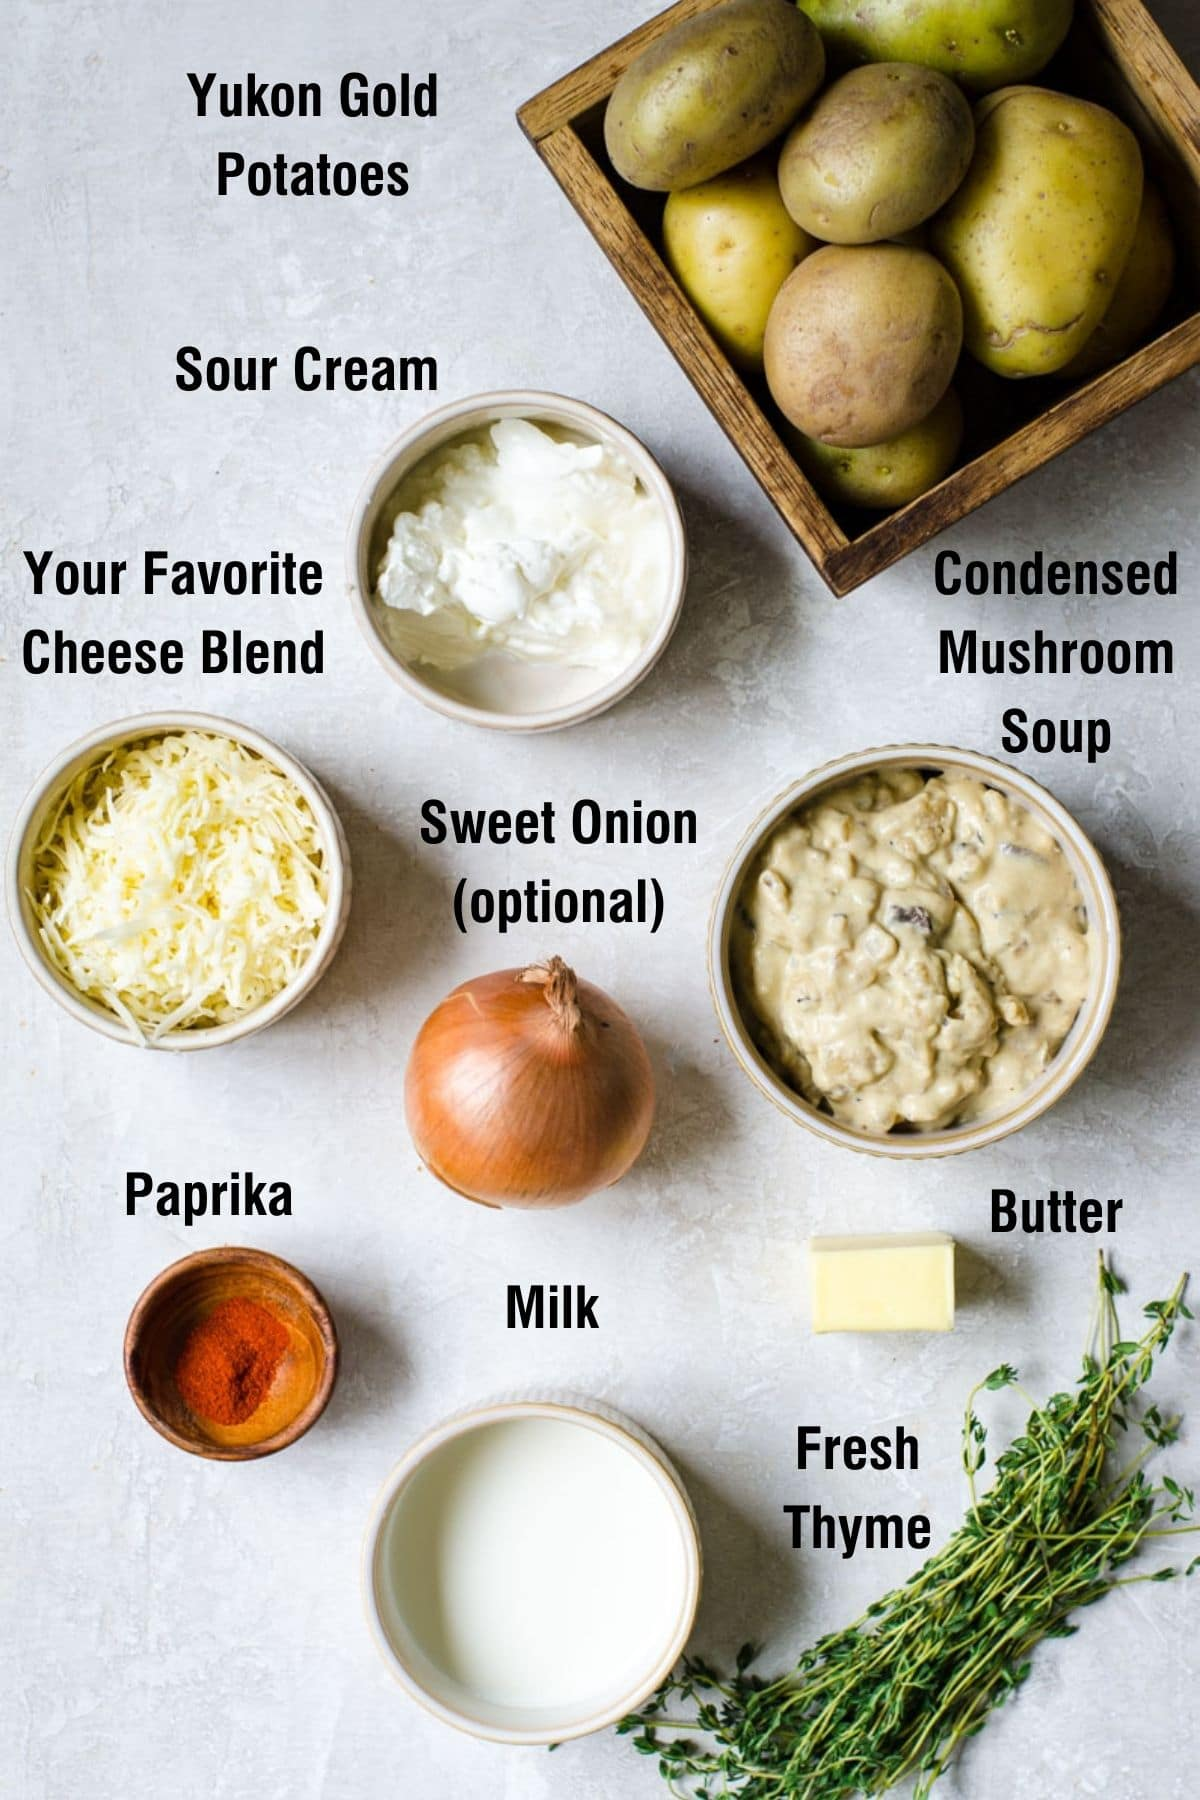 Labeled ingredients for making Scalloped Potatoes with Mushroom Soup